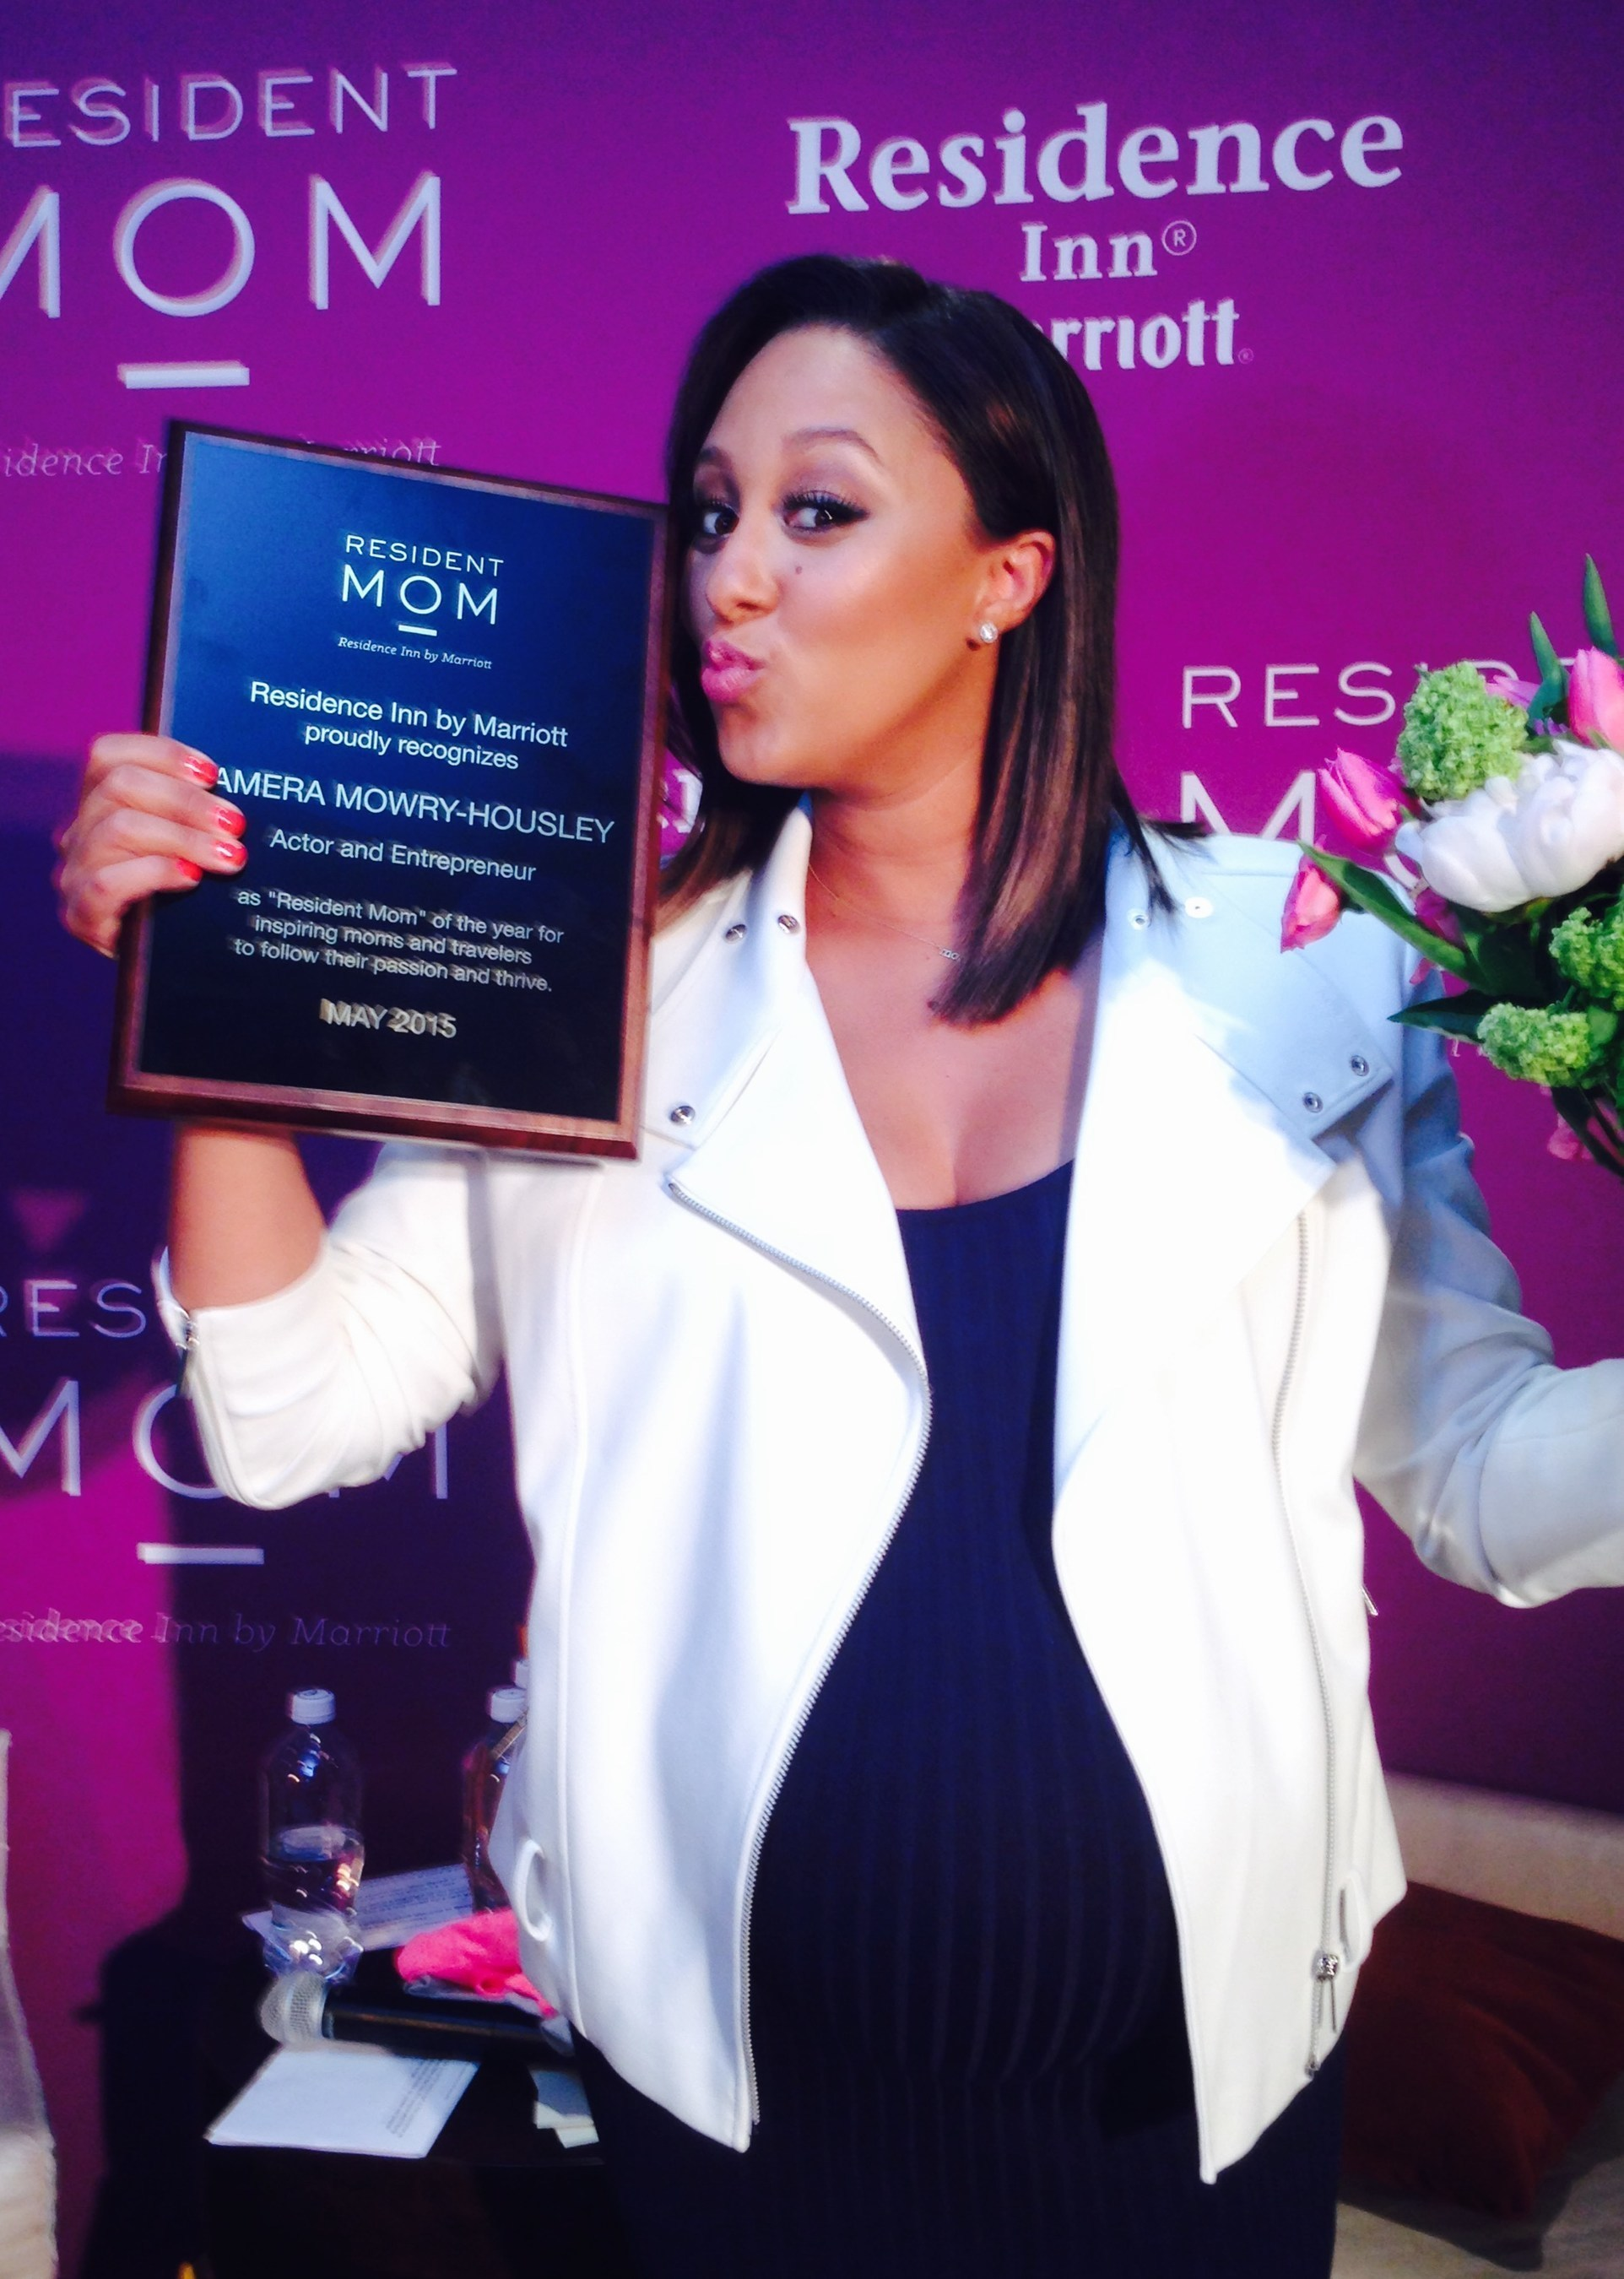 Tamera Mowry-Housley and Residence Inn by Marriott Reveal Stylish, Time-Saving DIY Tricks For Summer Travel; Mowry-Housley named 2015 Resident Mom of the Year